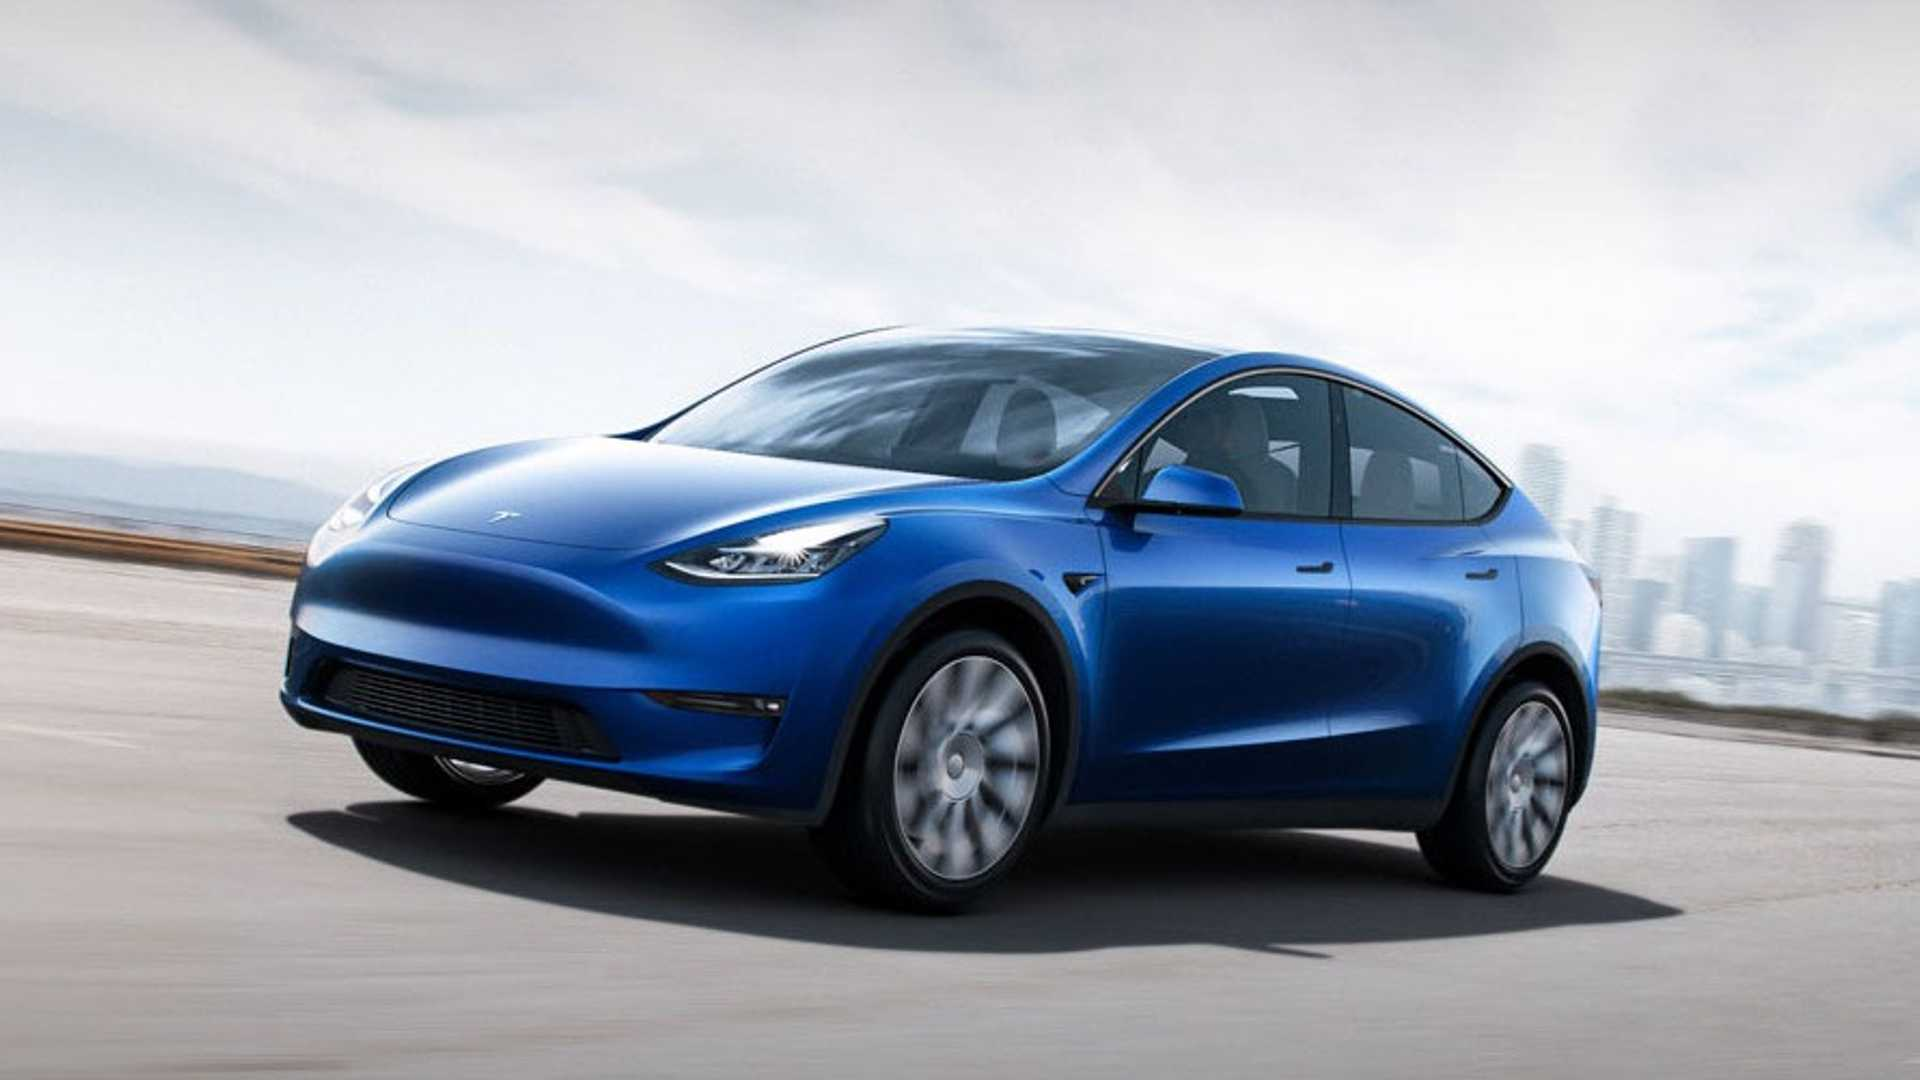 2021 Tesla Model Y Wallpapers 11 HD Images   NewCarCars 1920x1080